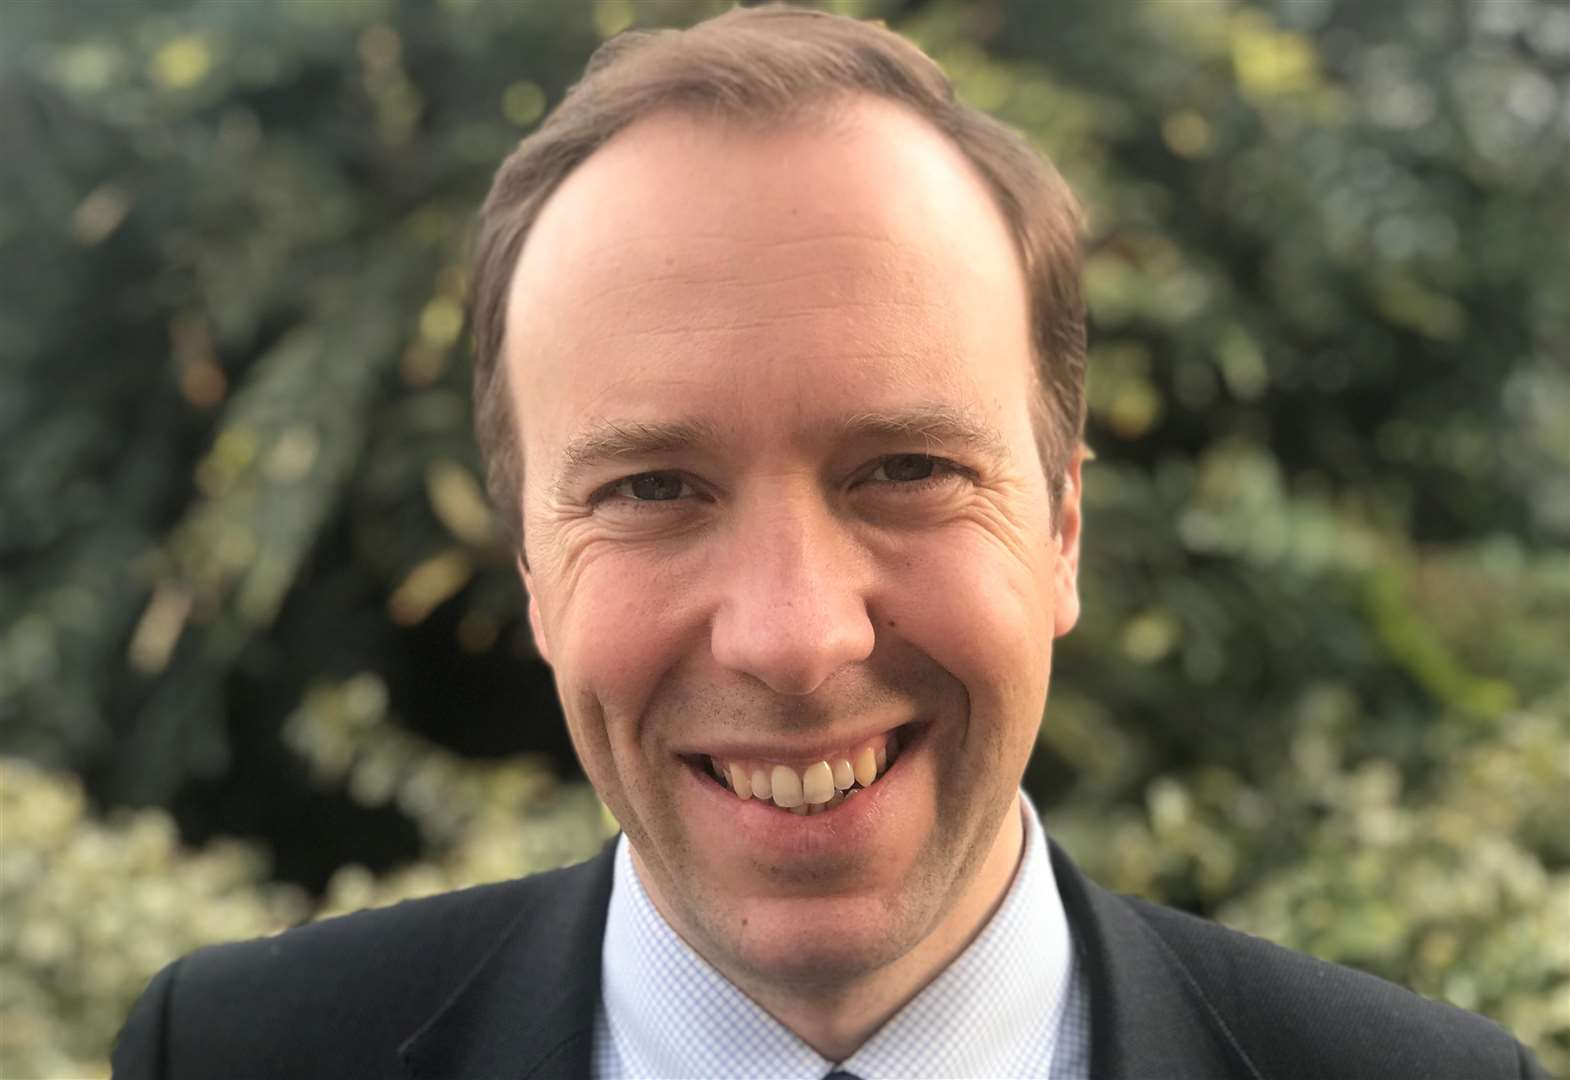 West Suffolk MP Matt Hancock backs Boris for Prime Minister